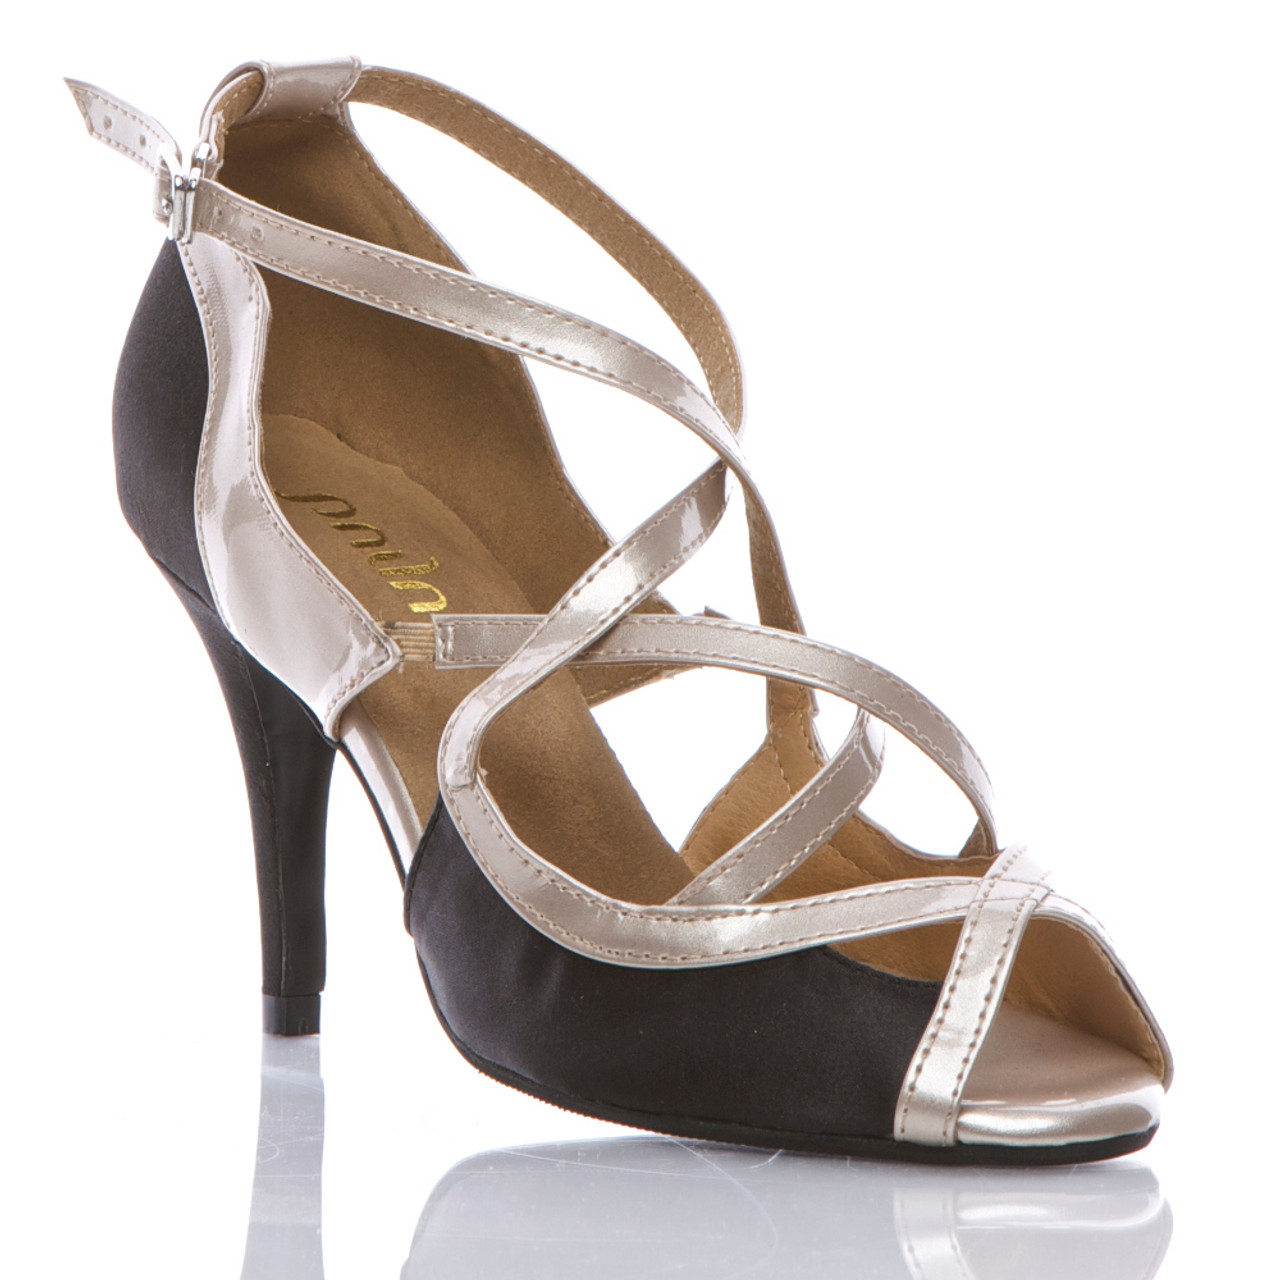 1381f1a2c Arlette - Strappy Open Toe Dance Shoe - Custom Made To Order - BS201333 -  Burju Shoes